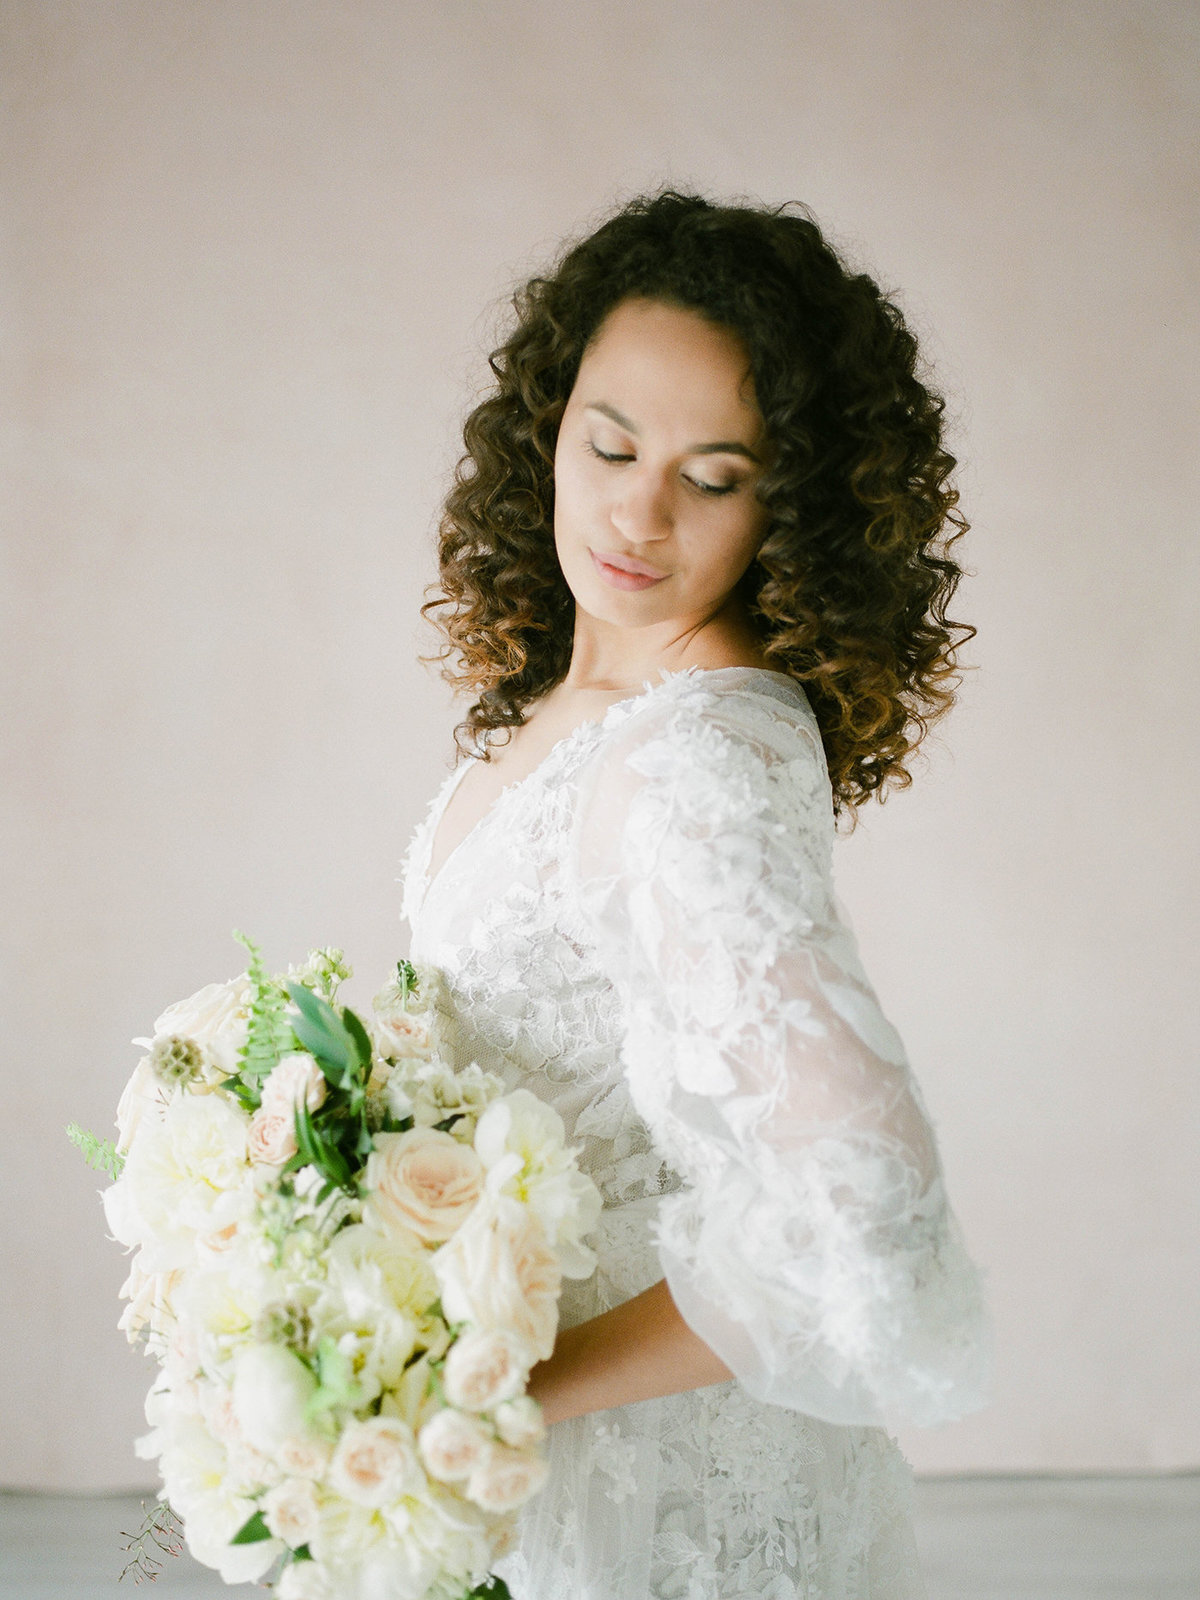 Fine Art Bridal Portraits - Sarah Sunstrom Photography - Film Wedding Photographer - 22